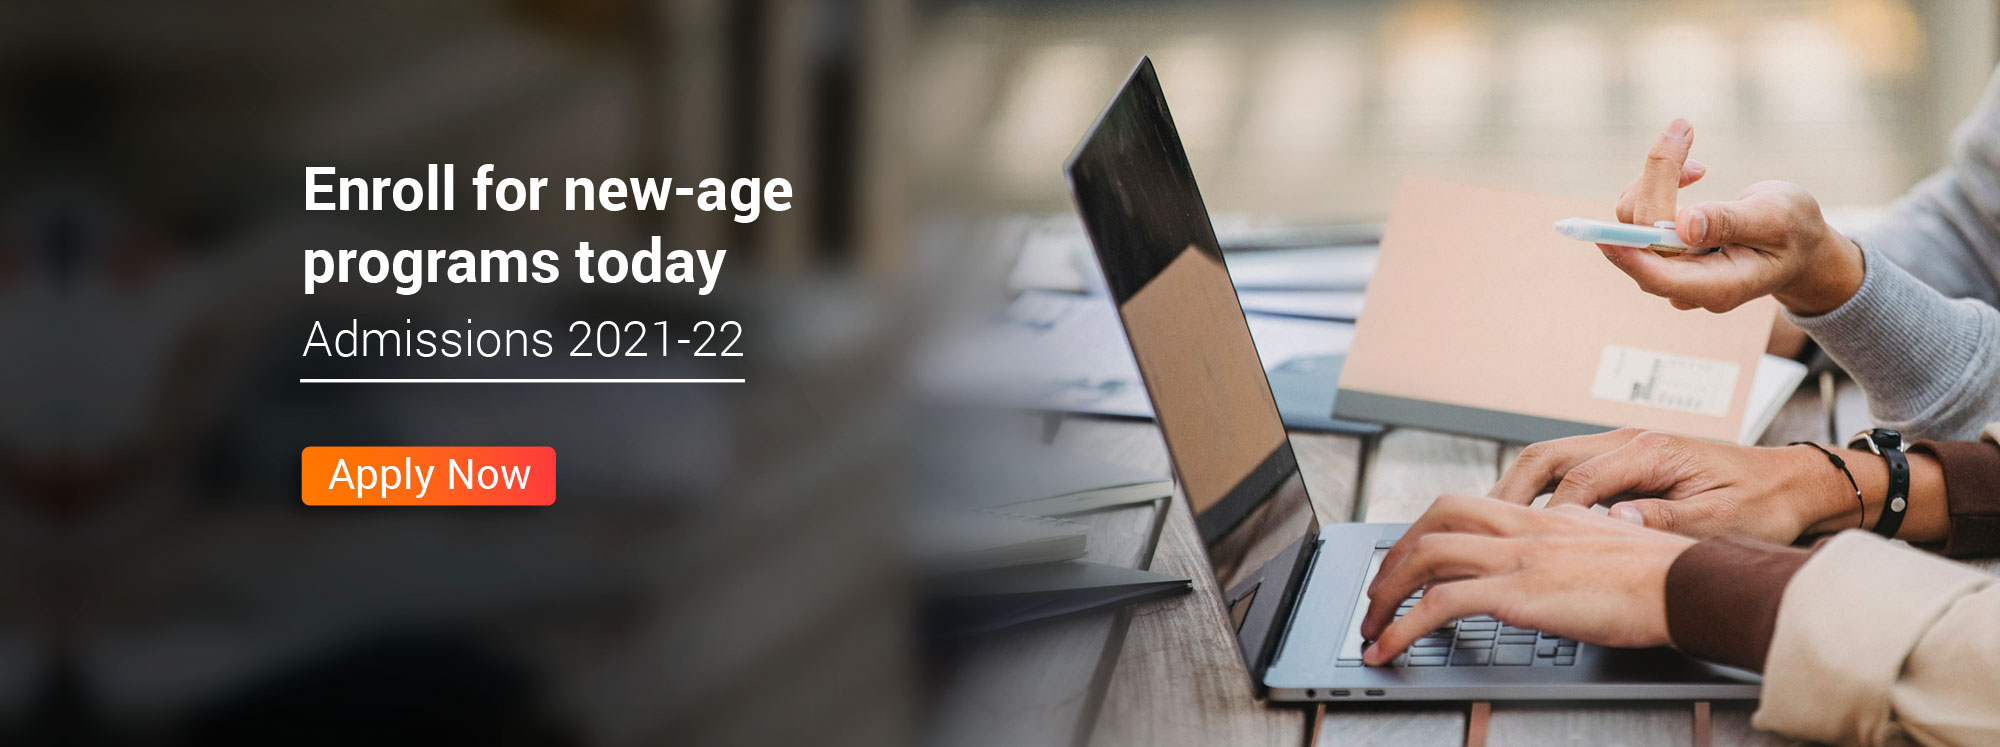 New ages programs Today